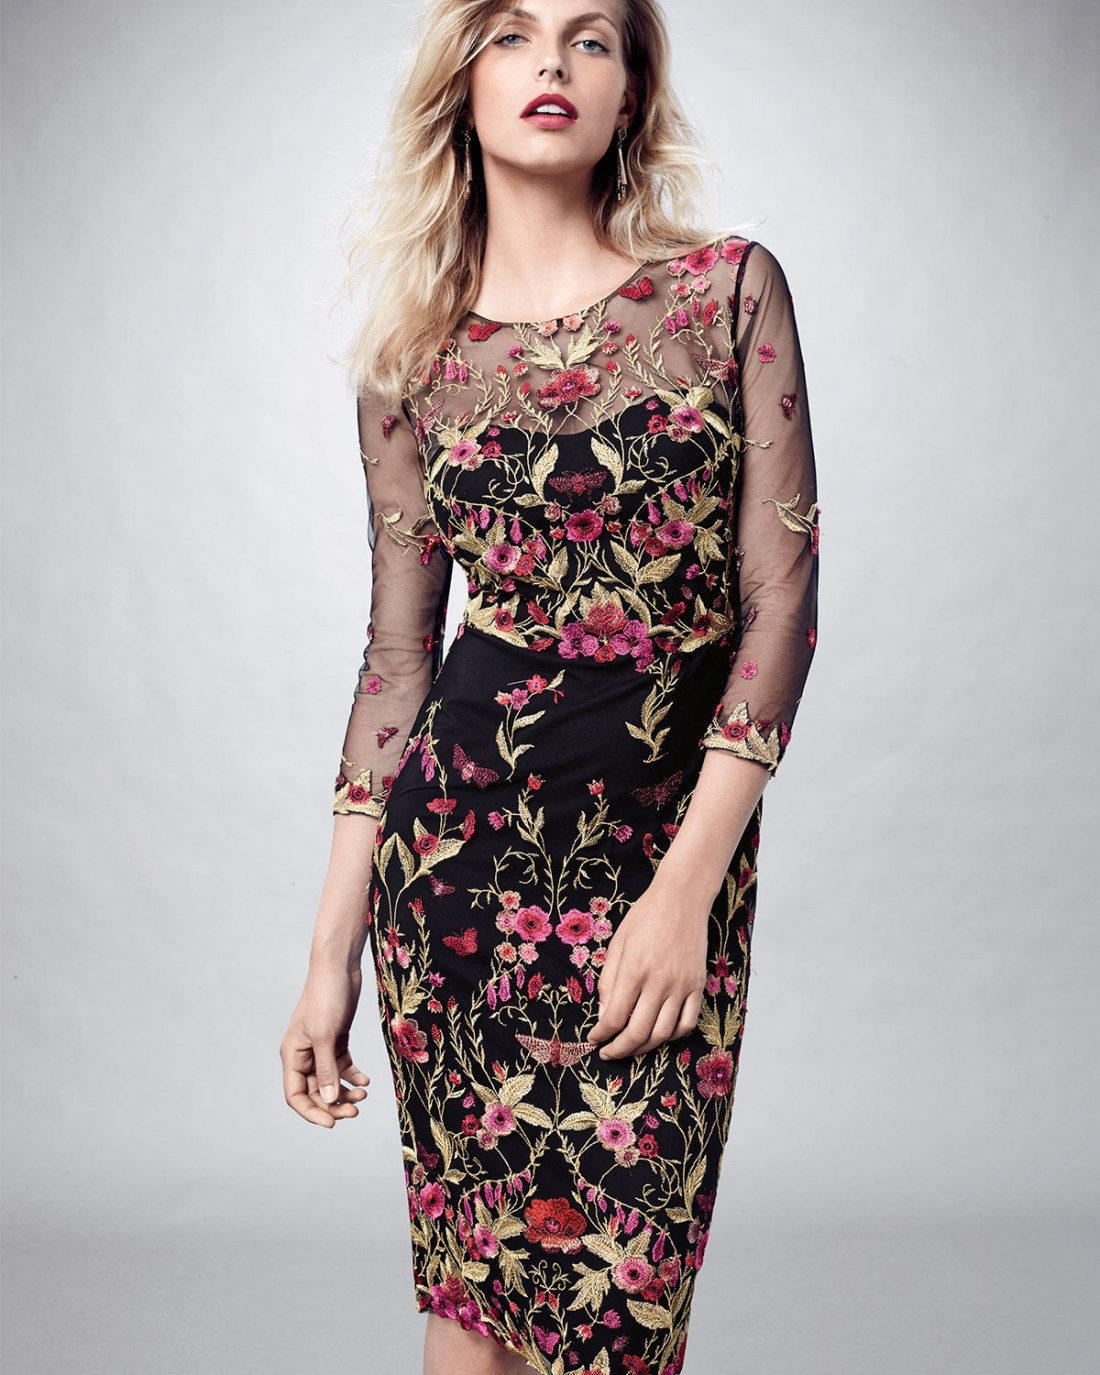 Marchessa Floral Embroidered Sheath Dress